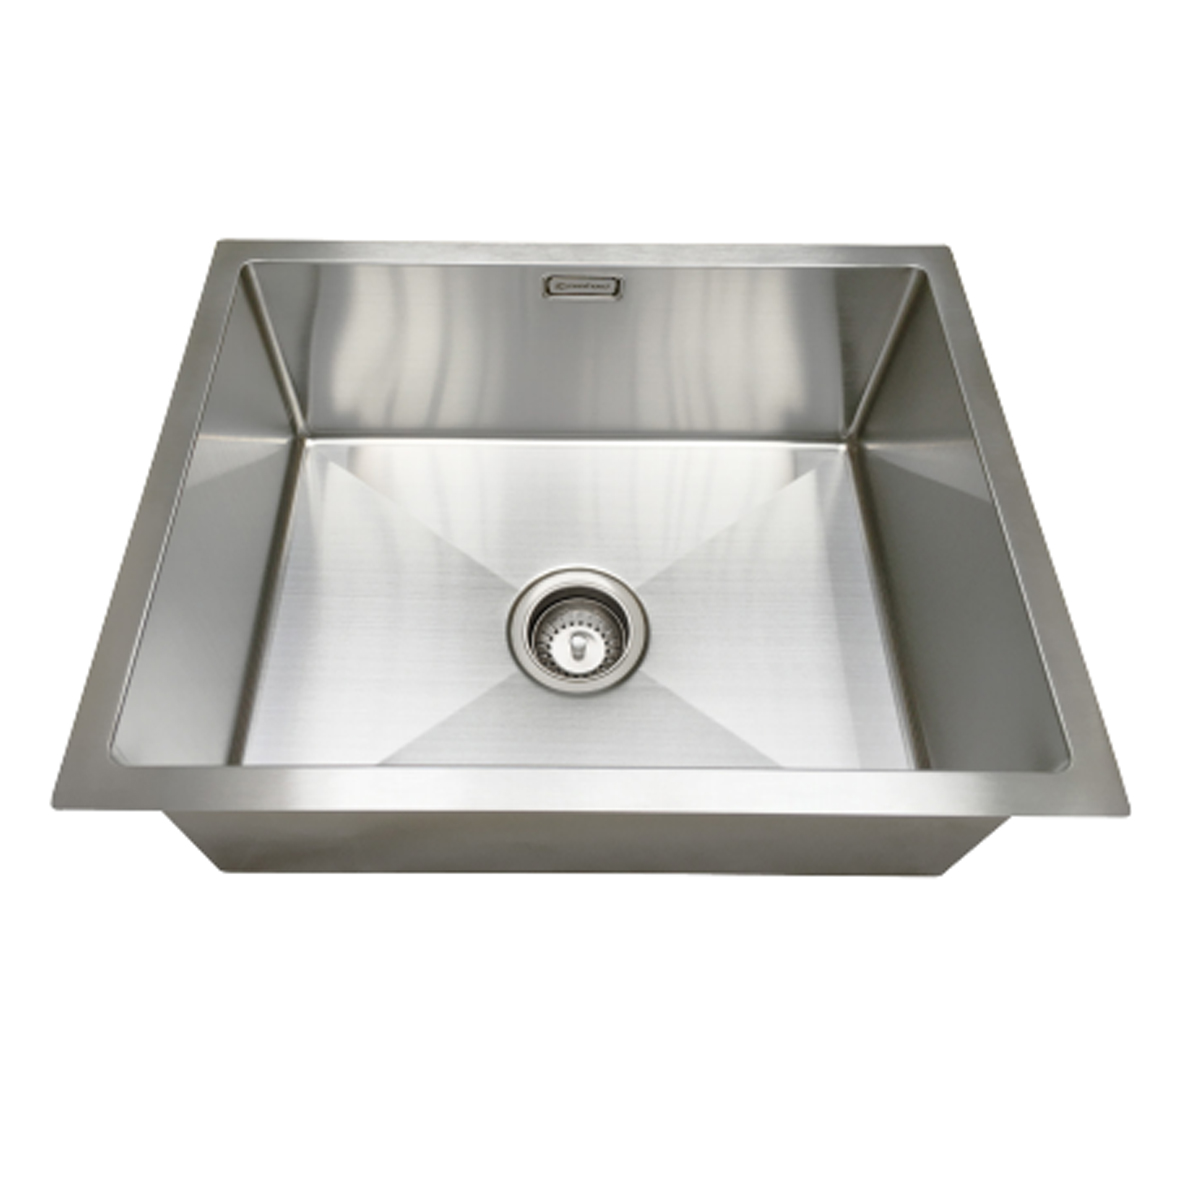 Everhard 73177 Squareline Plus 42L Utility Sink 77284